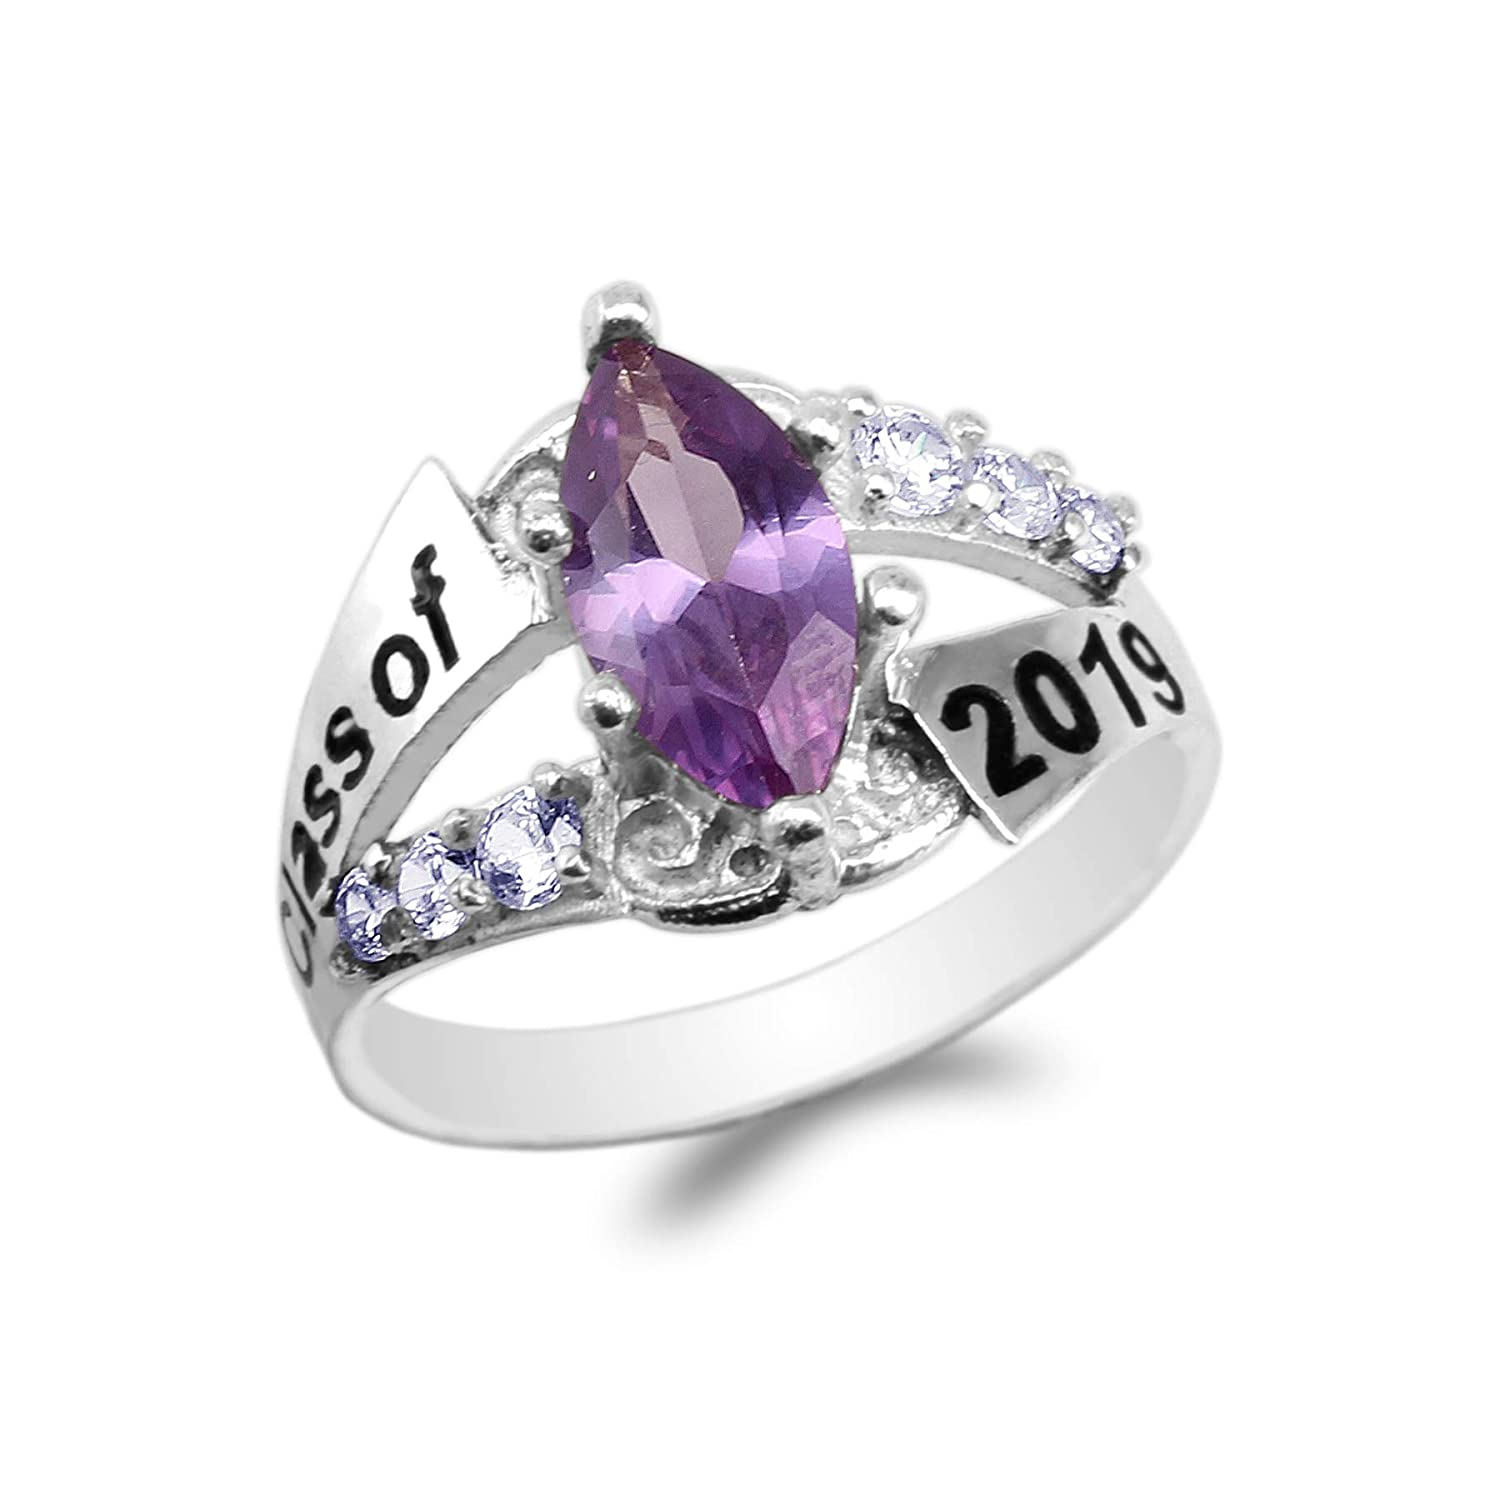 JamesJenny White Gold Plated Graduation Class of 2019 School Ring with 1.25ct Purple Marquise CZ Size 4-10